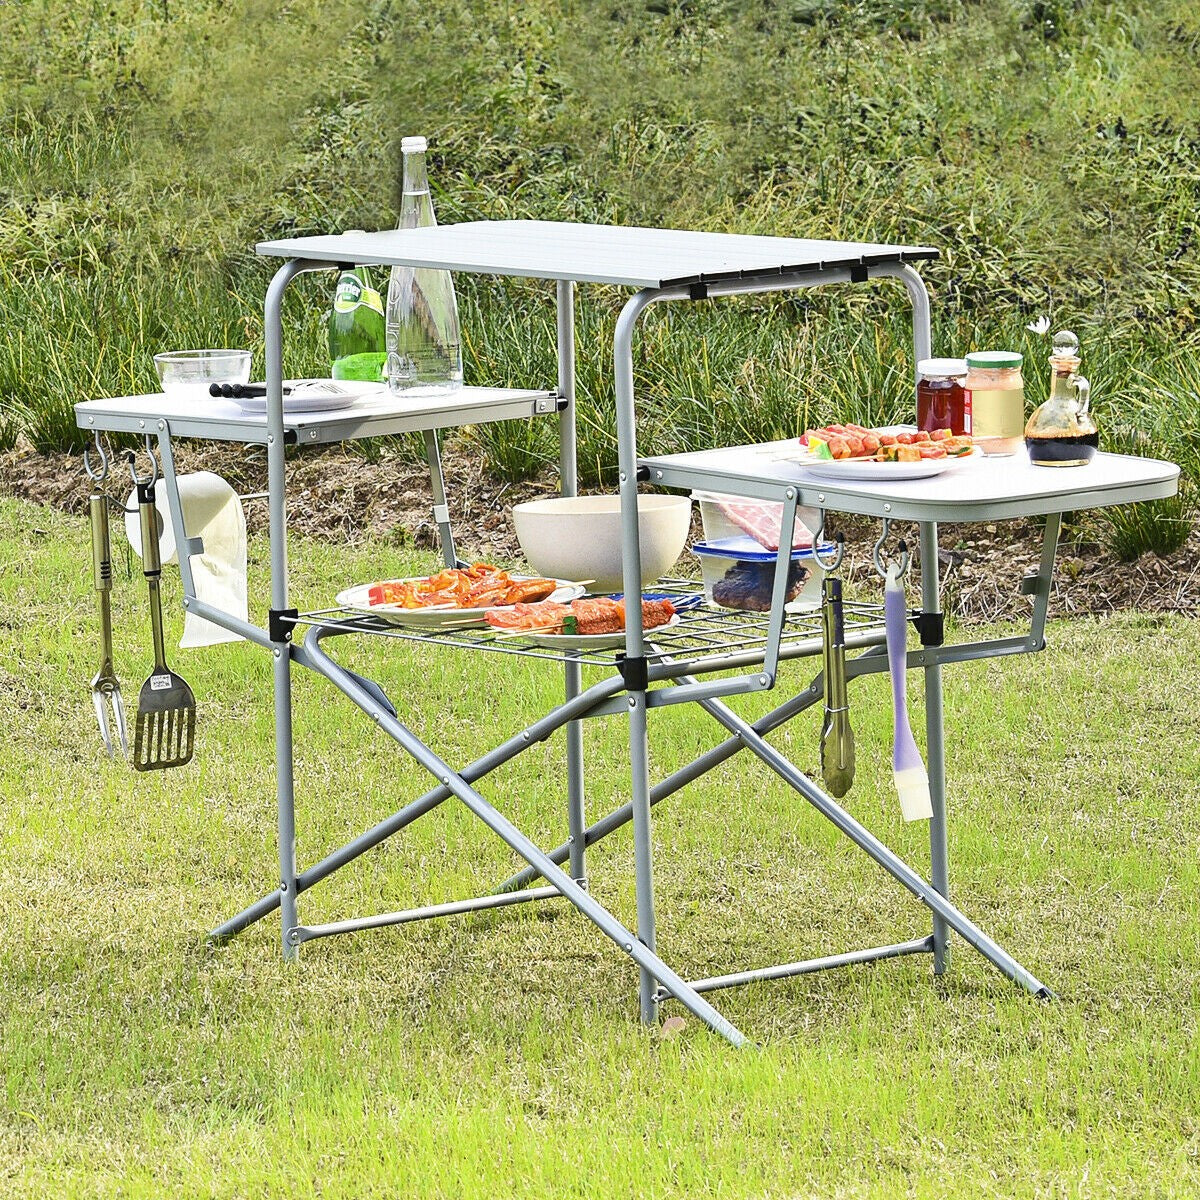 Folding Aluminum Camping Table BBQ Picnic Outdoors Garden Lightweight Carry Bag